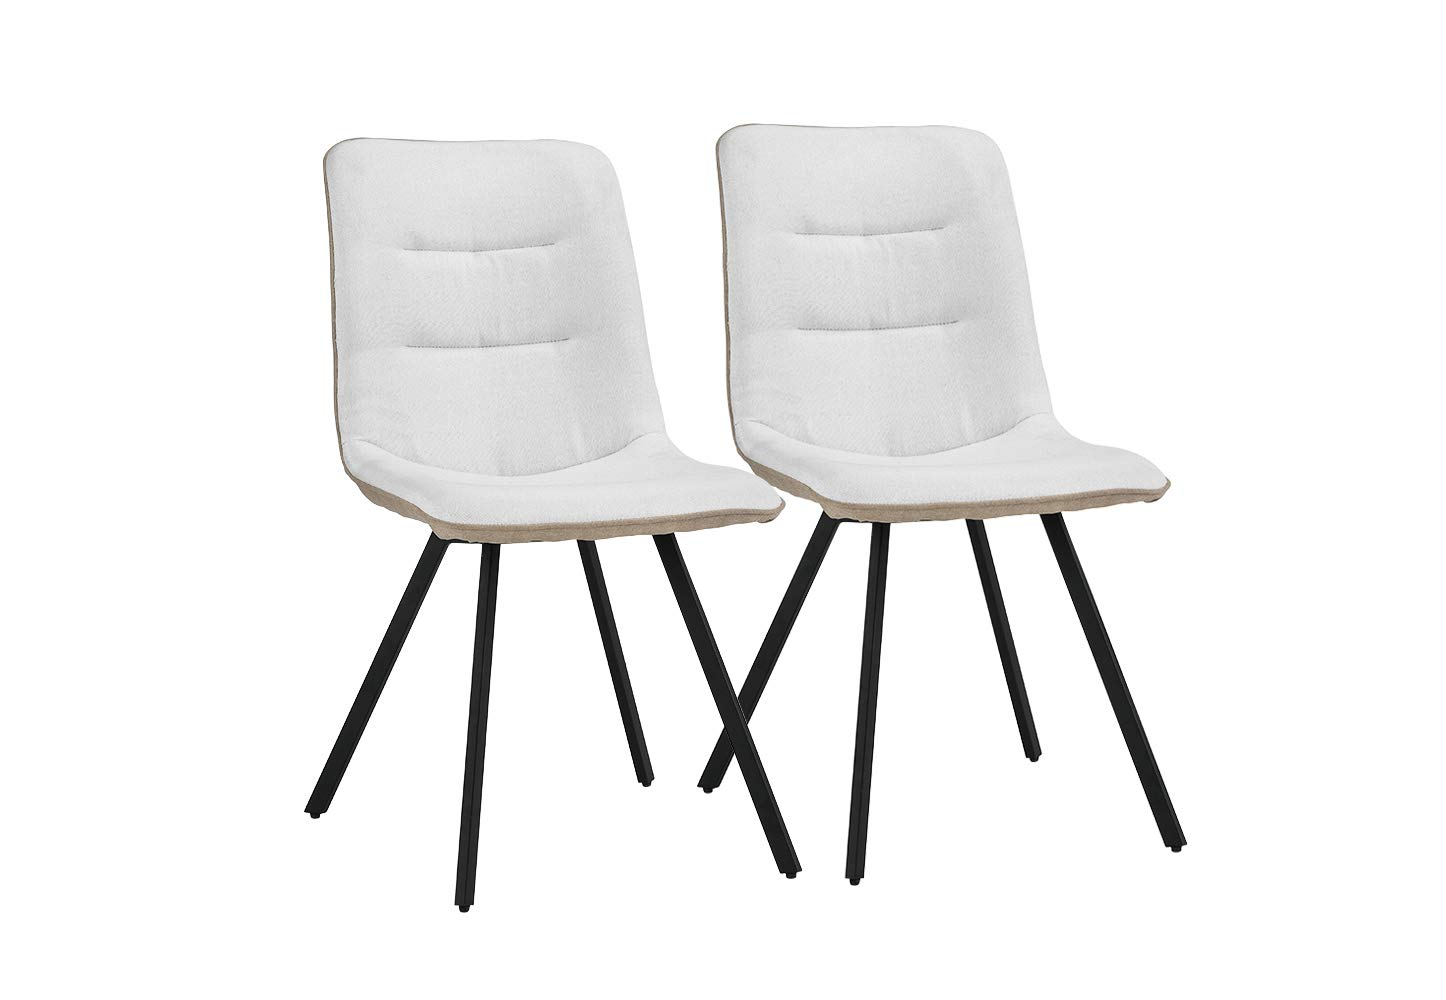 Upholstered 2 Piece Linen Dining Chairs, 19'' W inches (White)